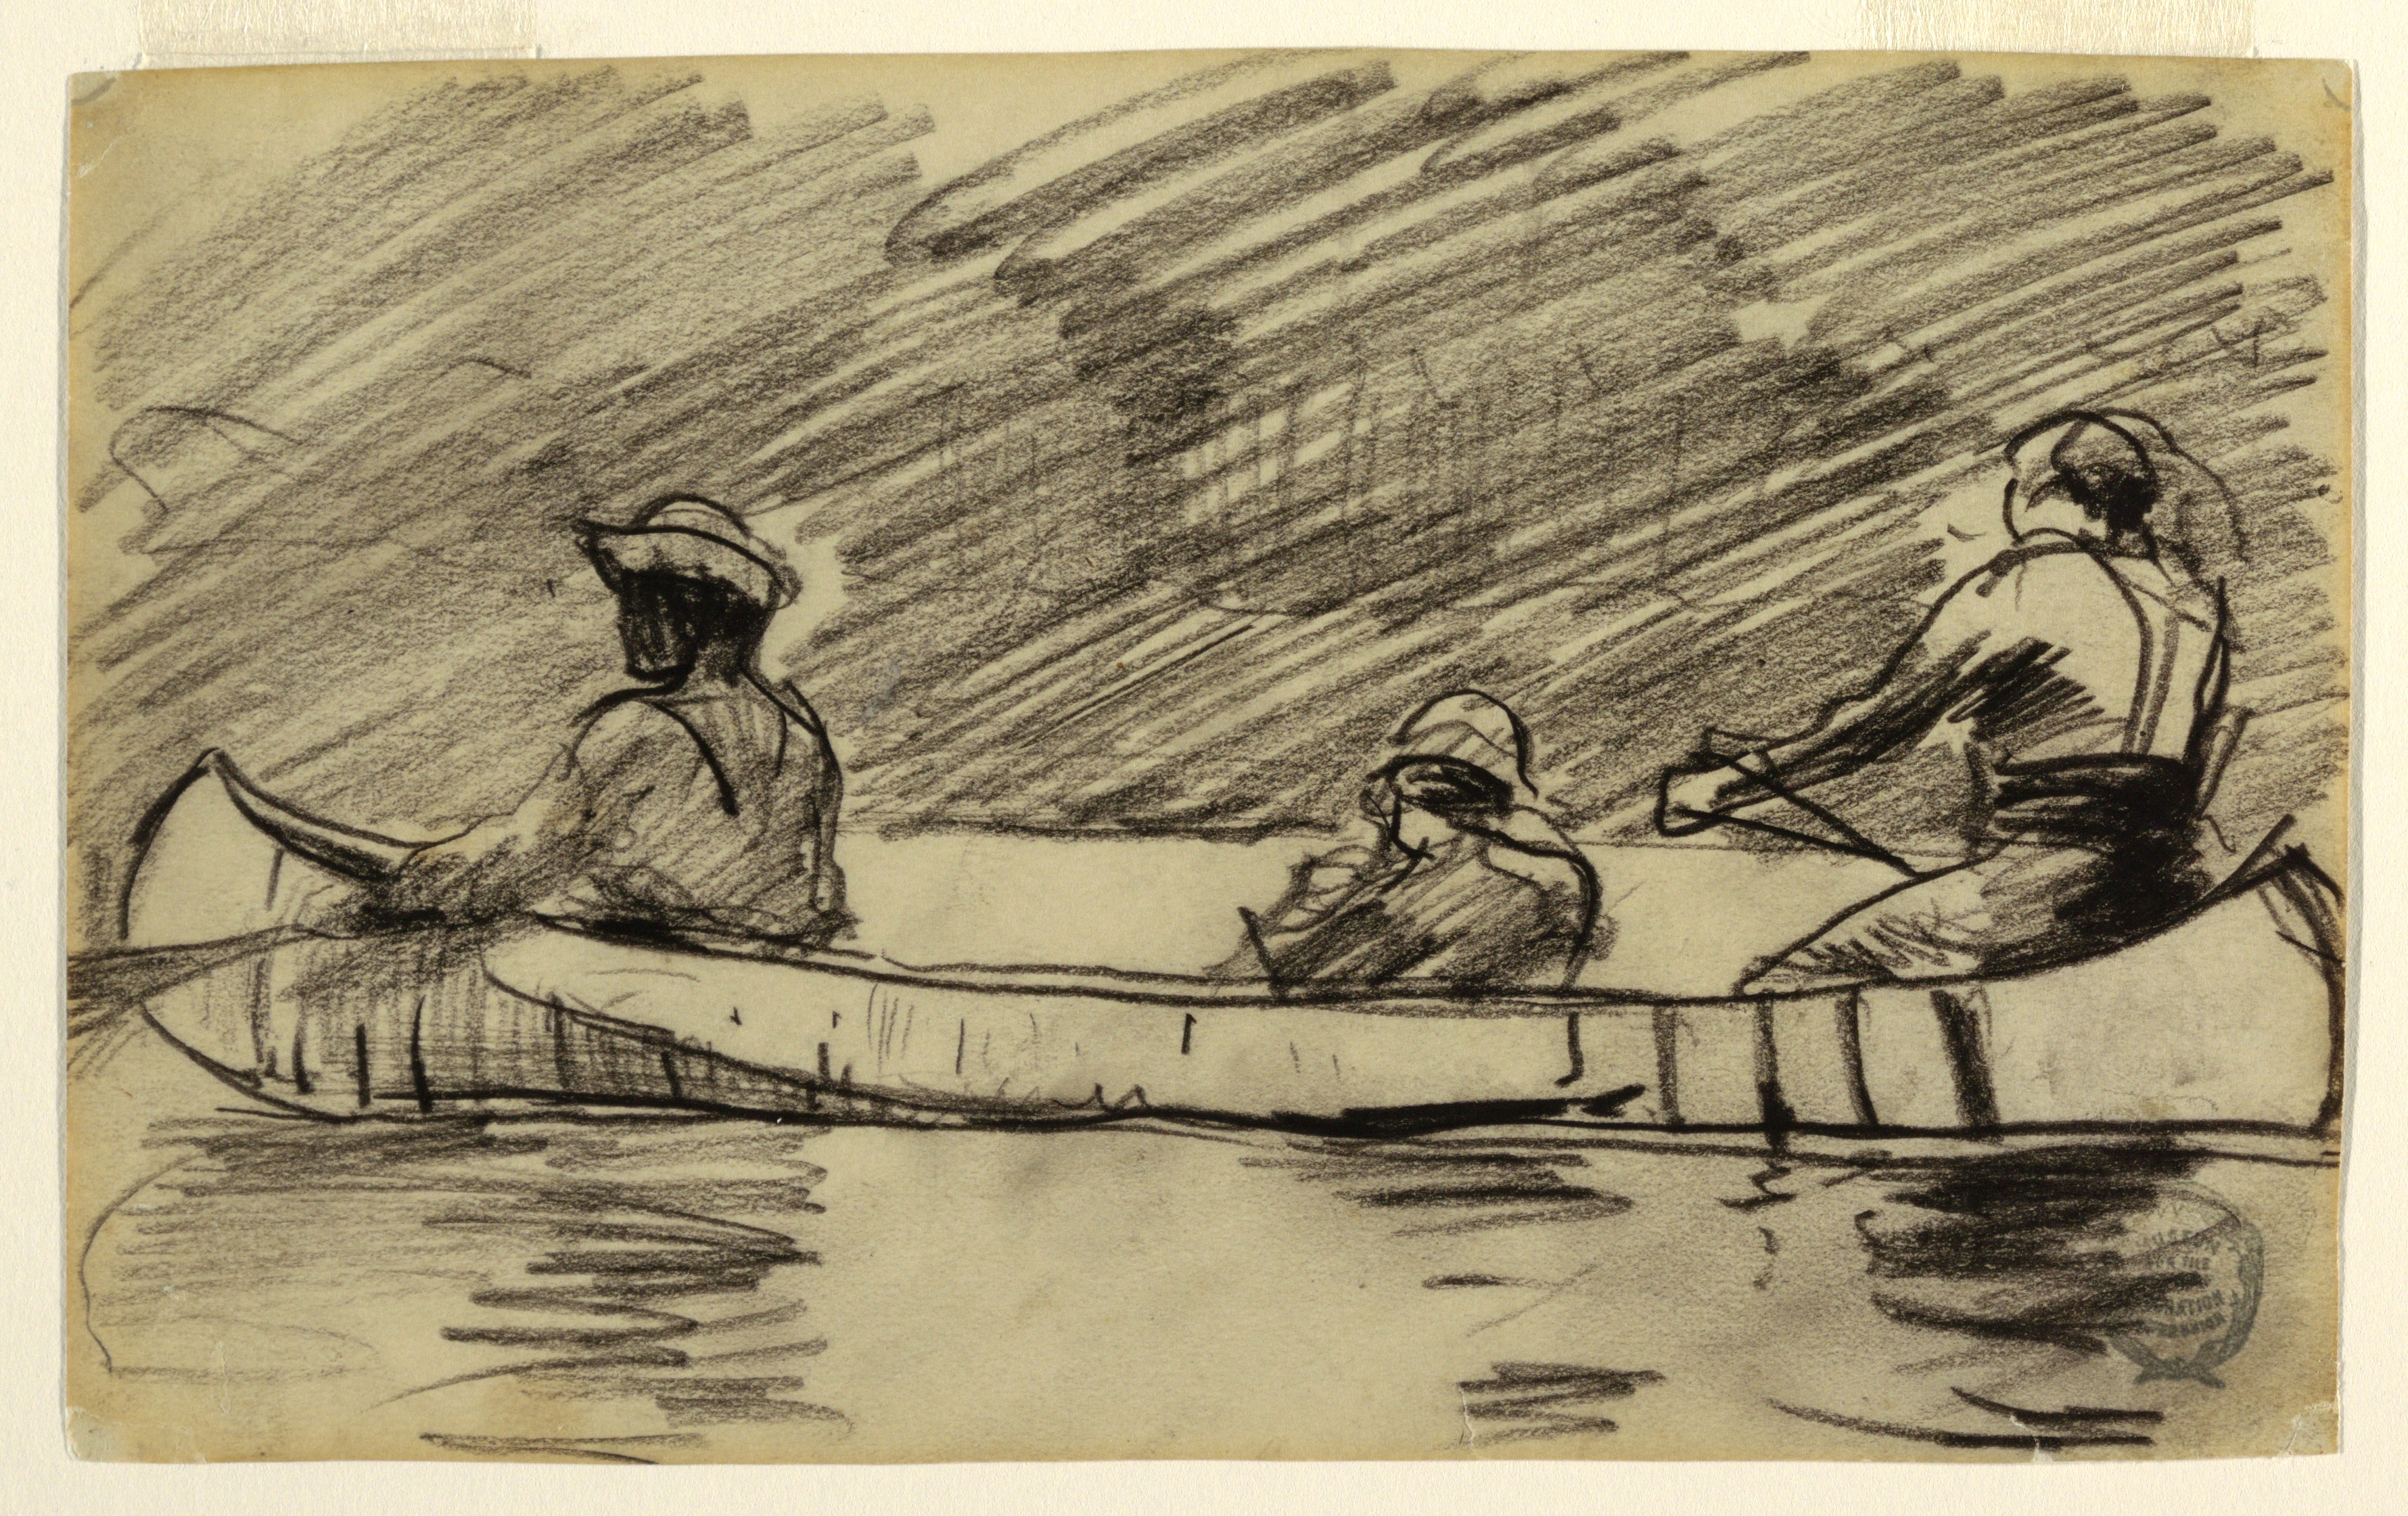 FileDrawing Canoe With Three Men Probably 1897 CH 18175107